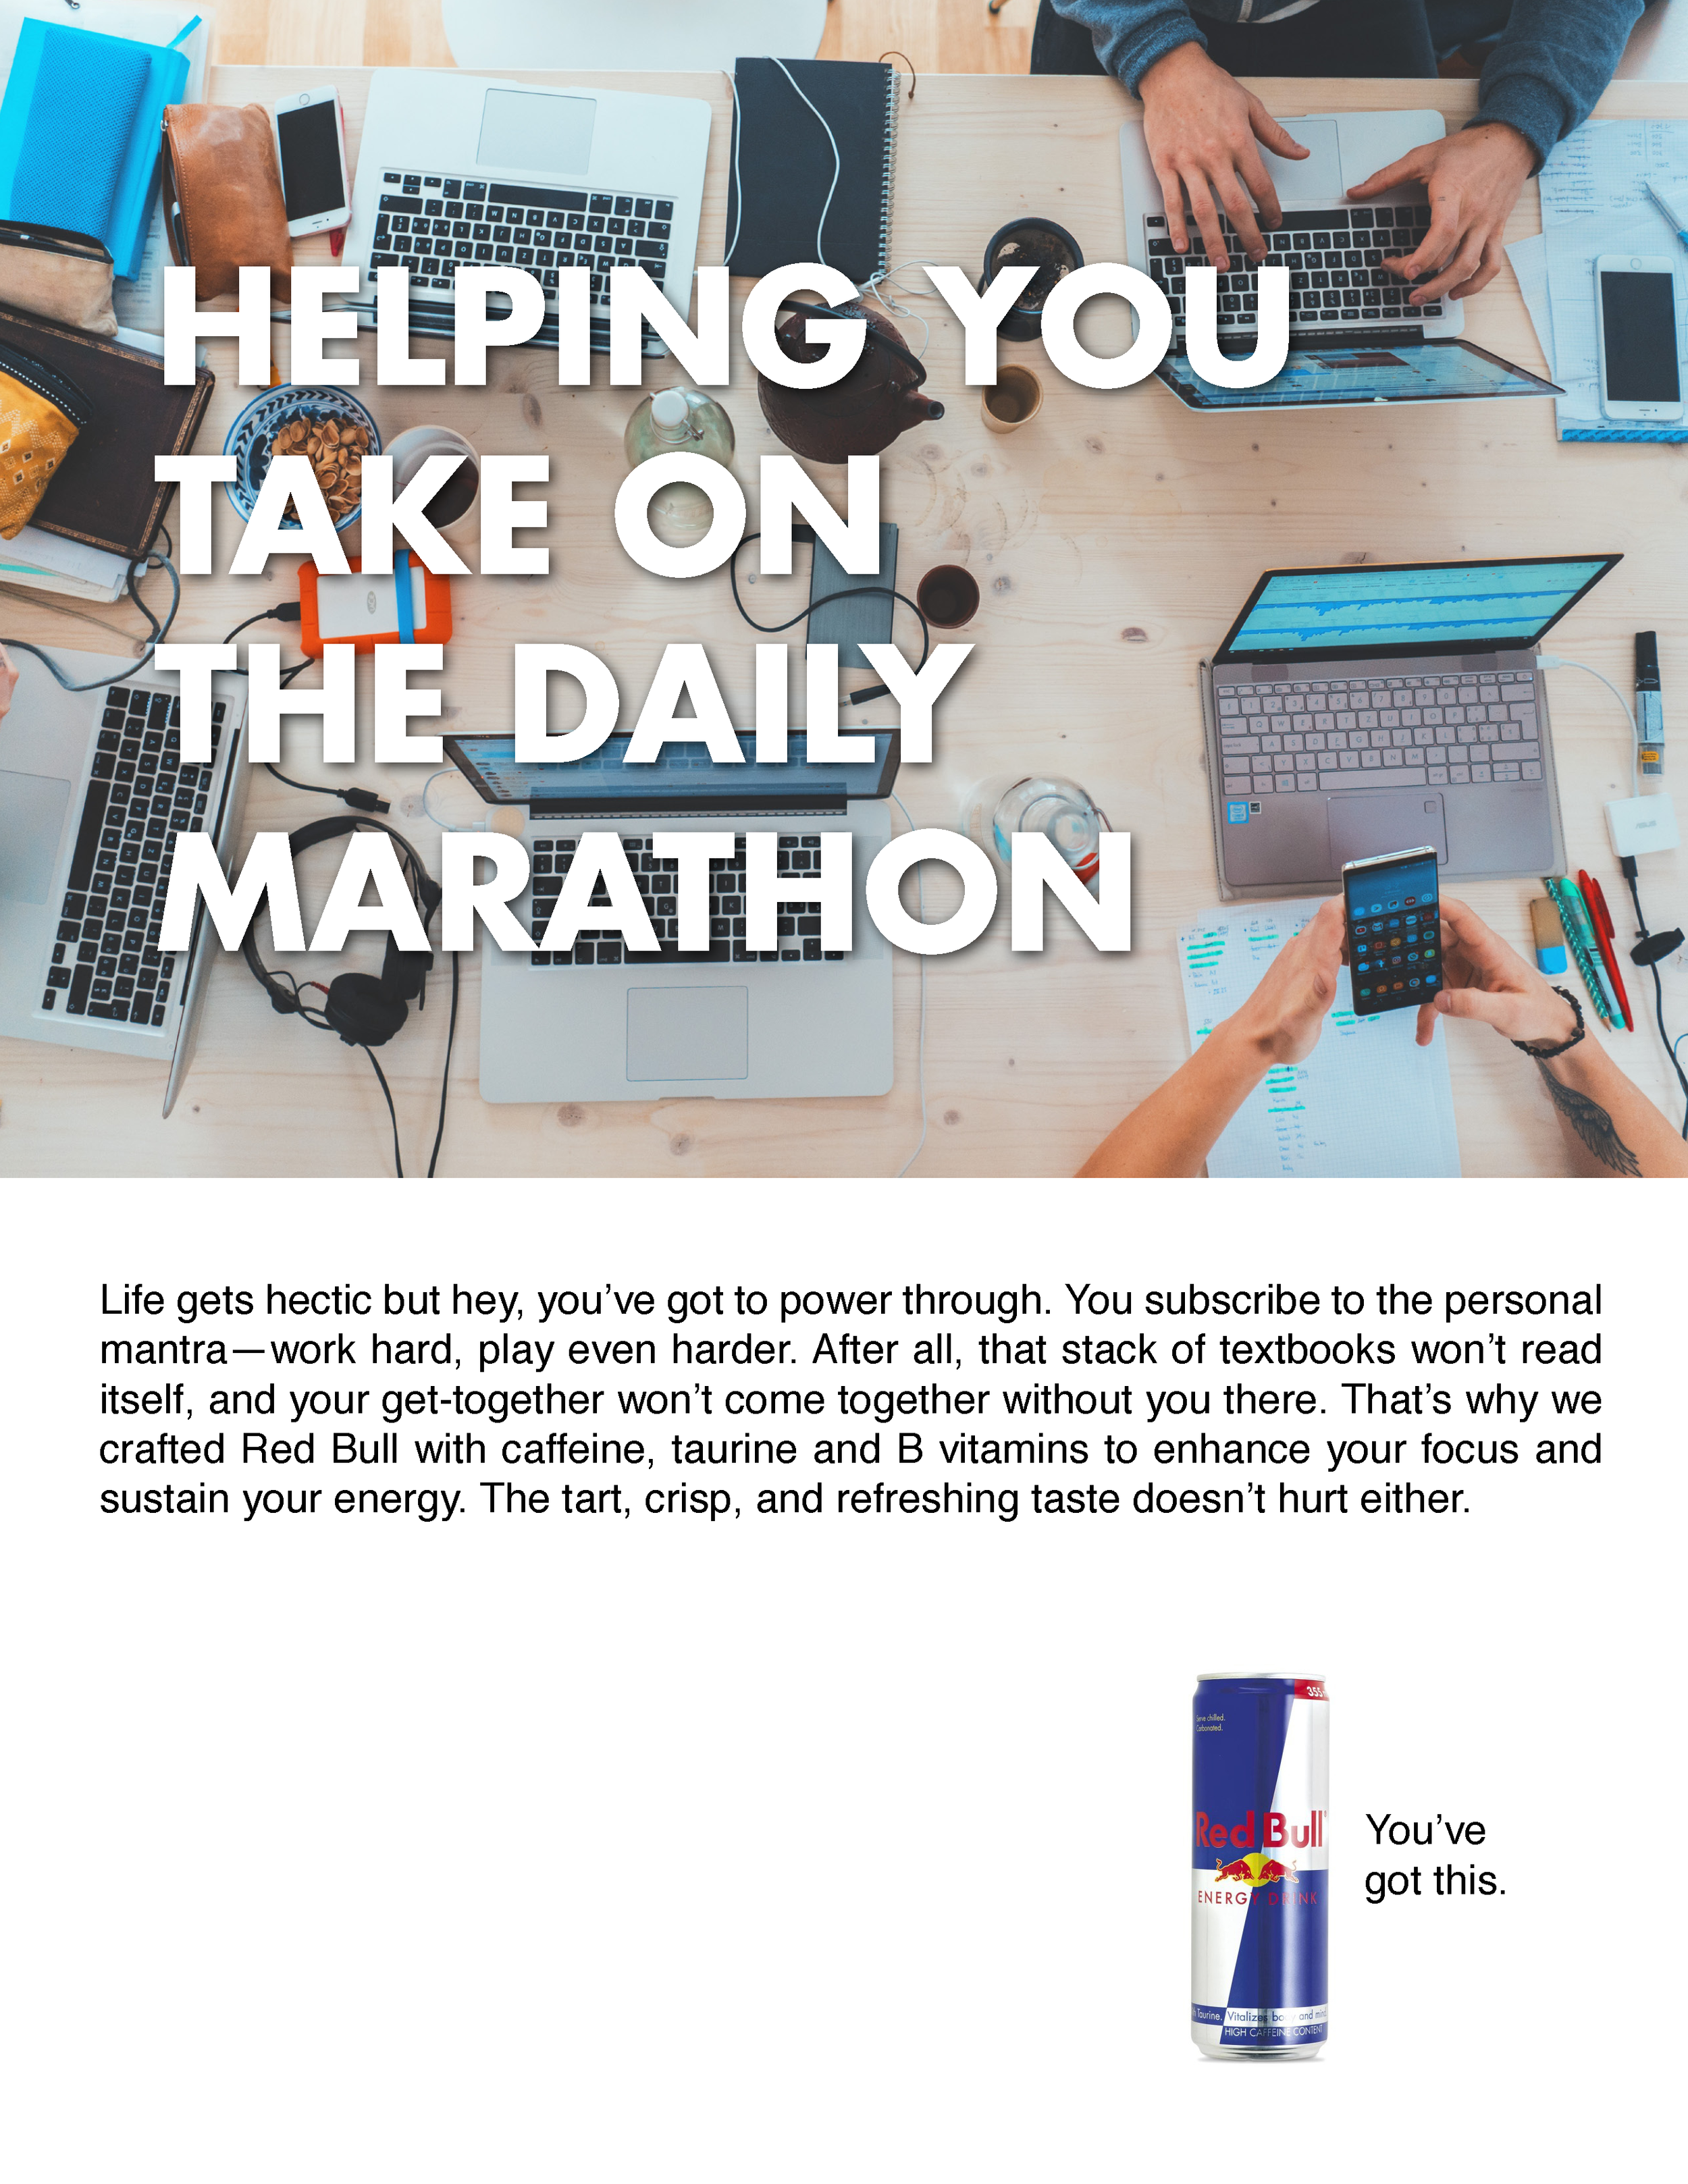 Able to Take on Challenges - College students worry about falling behind, so this ad is intended to show that a healthy dose of energy can complement a fun and active lifestyle.